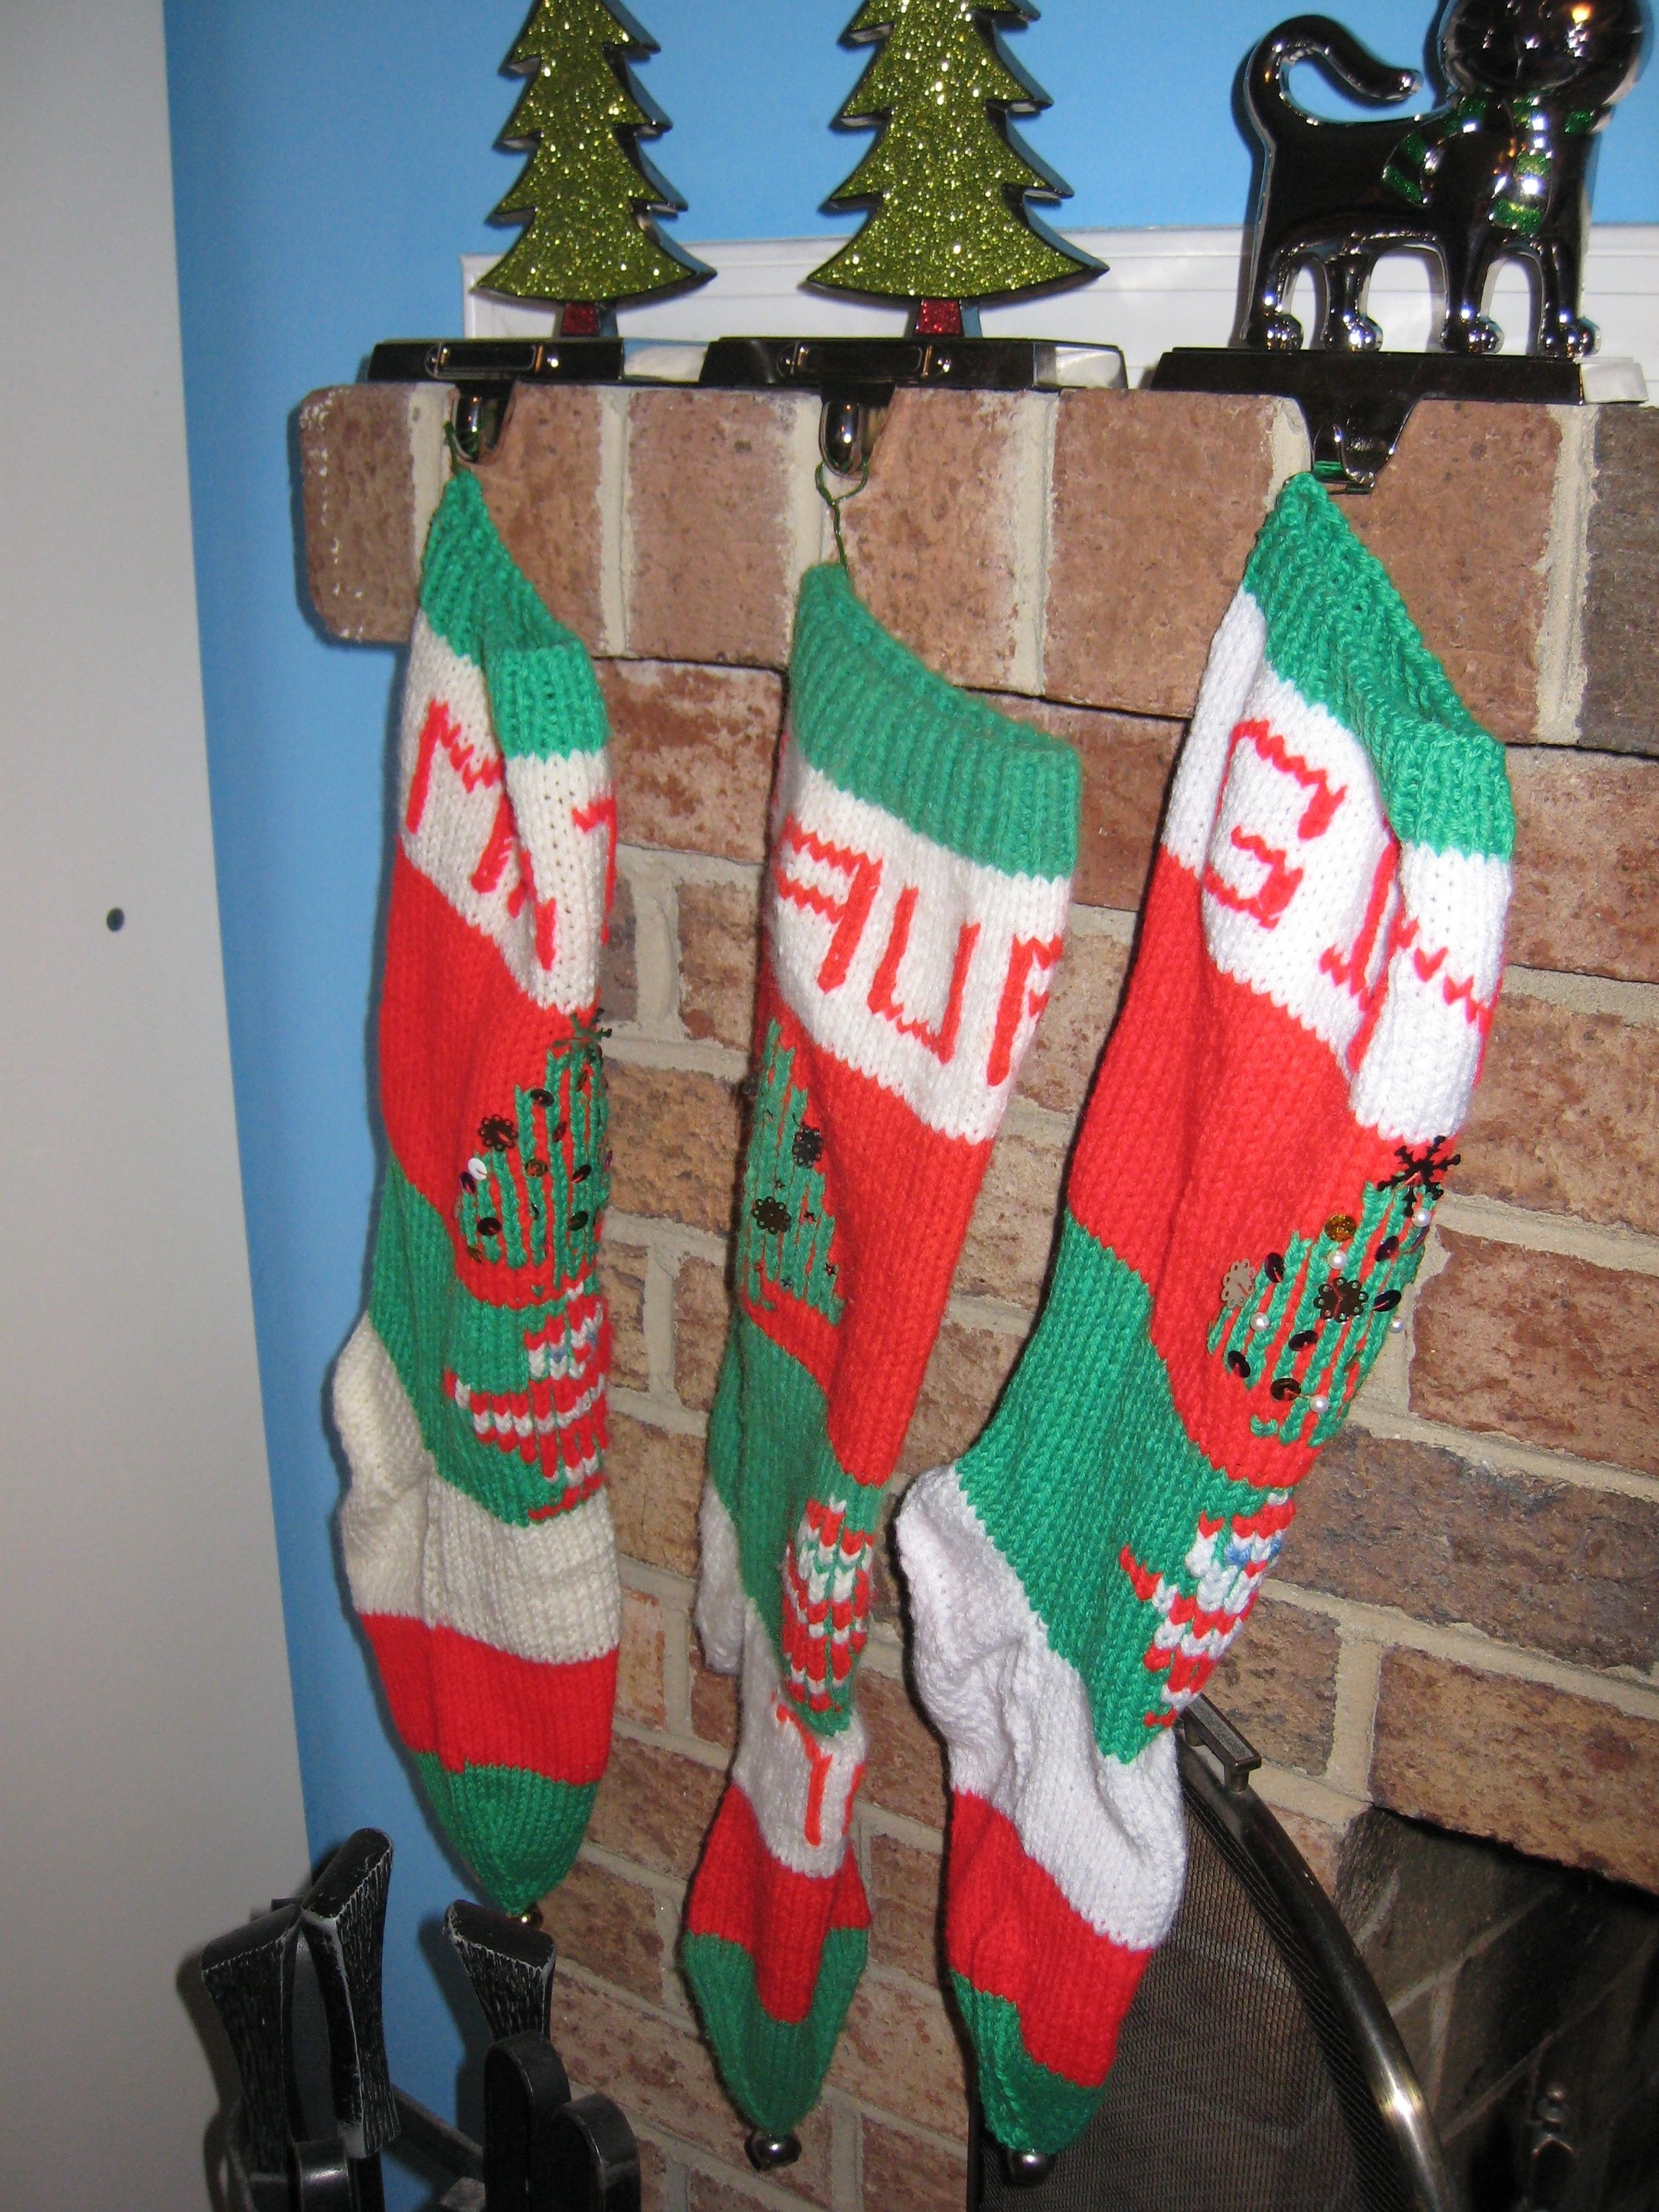 Knitting Patterns For Xmas Stockings : KNITTED CHRISTMAS STOCKING PATTERNS   Free Patterns